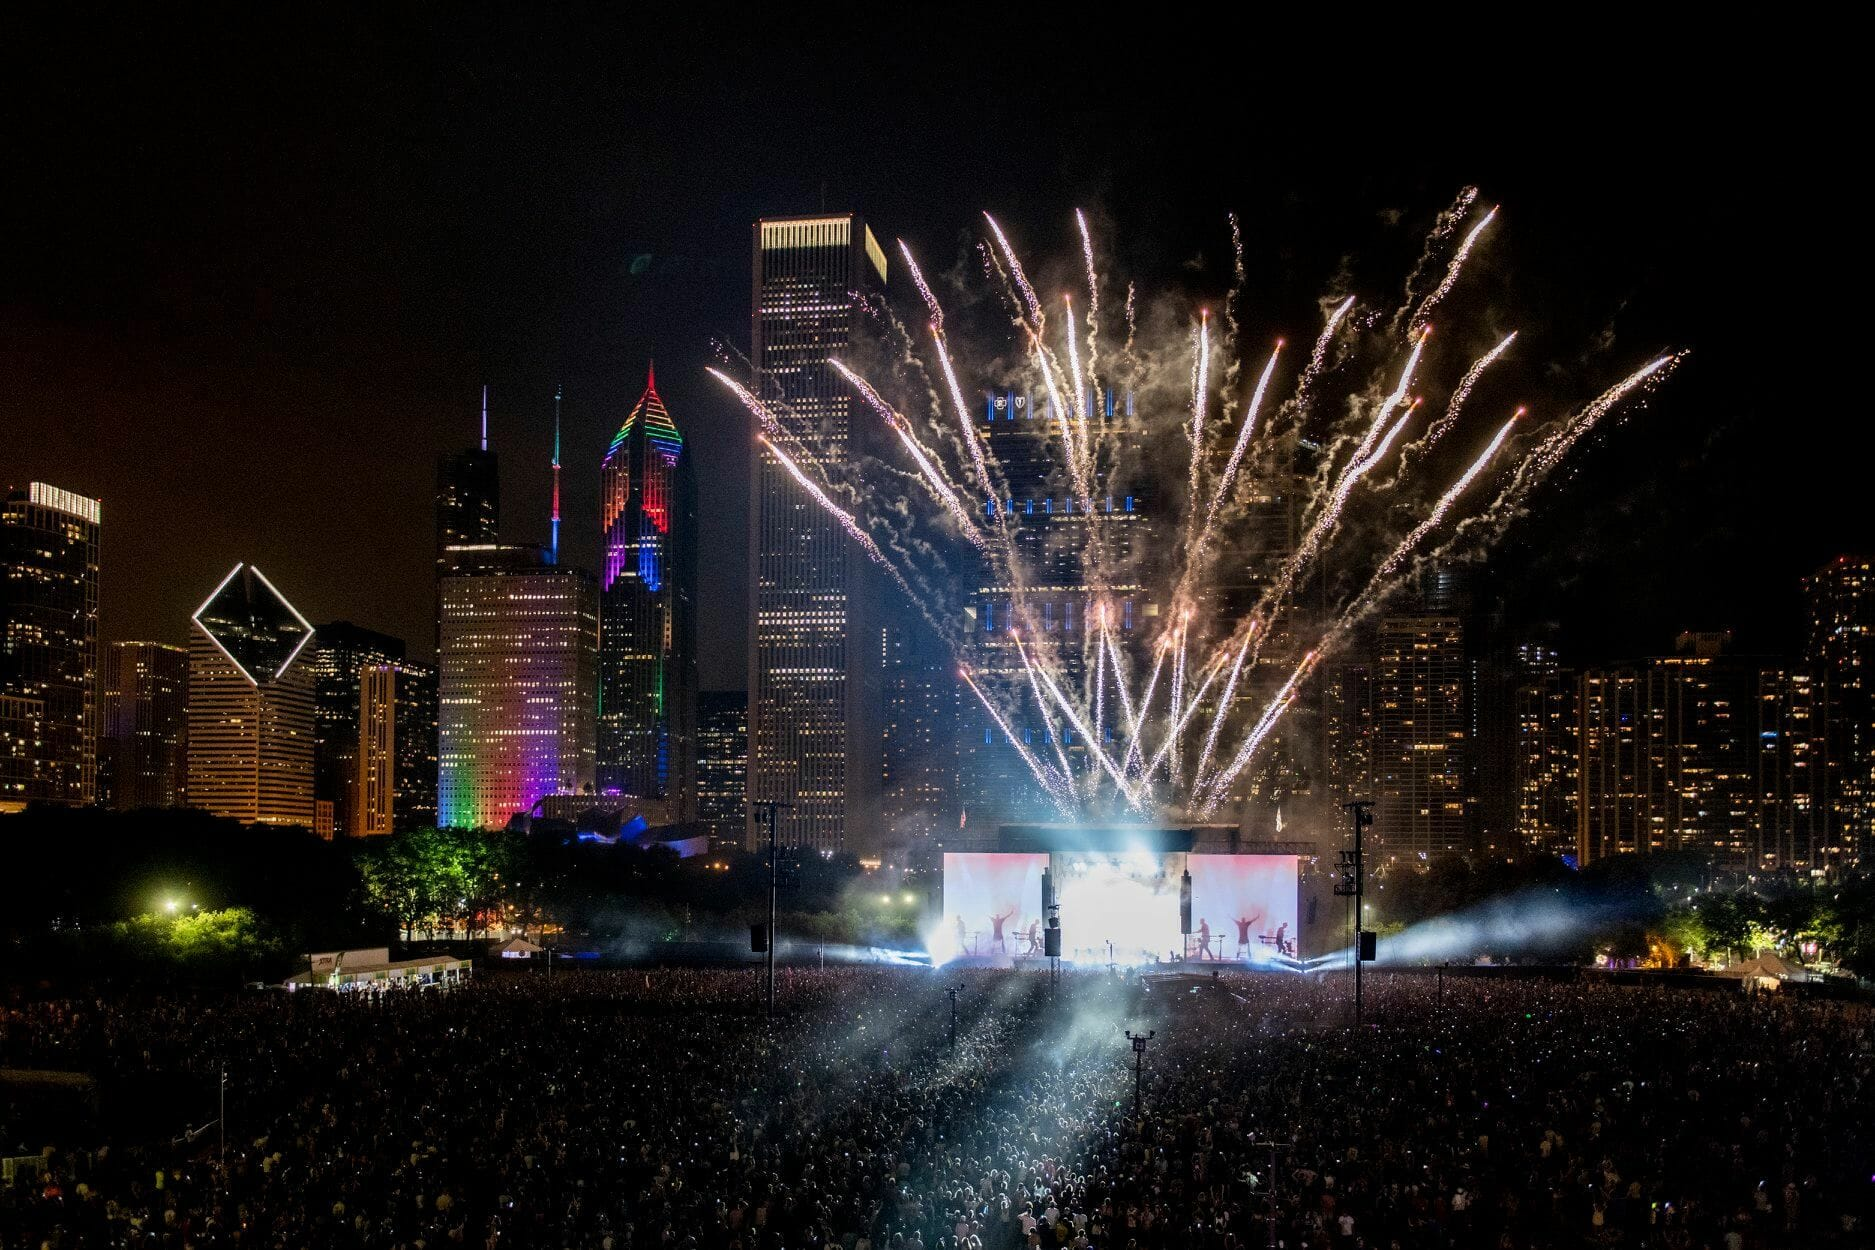 Lollapalooza 2020 cancelled, virtual event planned as replacementD2HDNhAAotI7